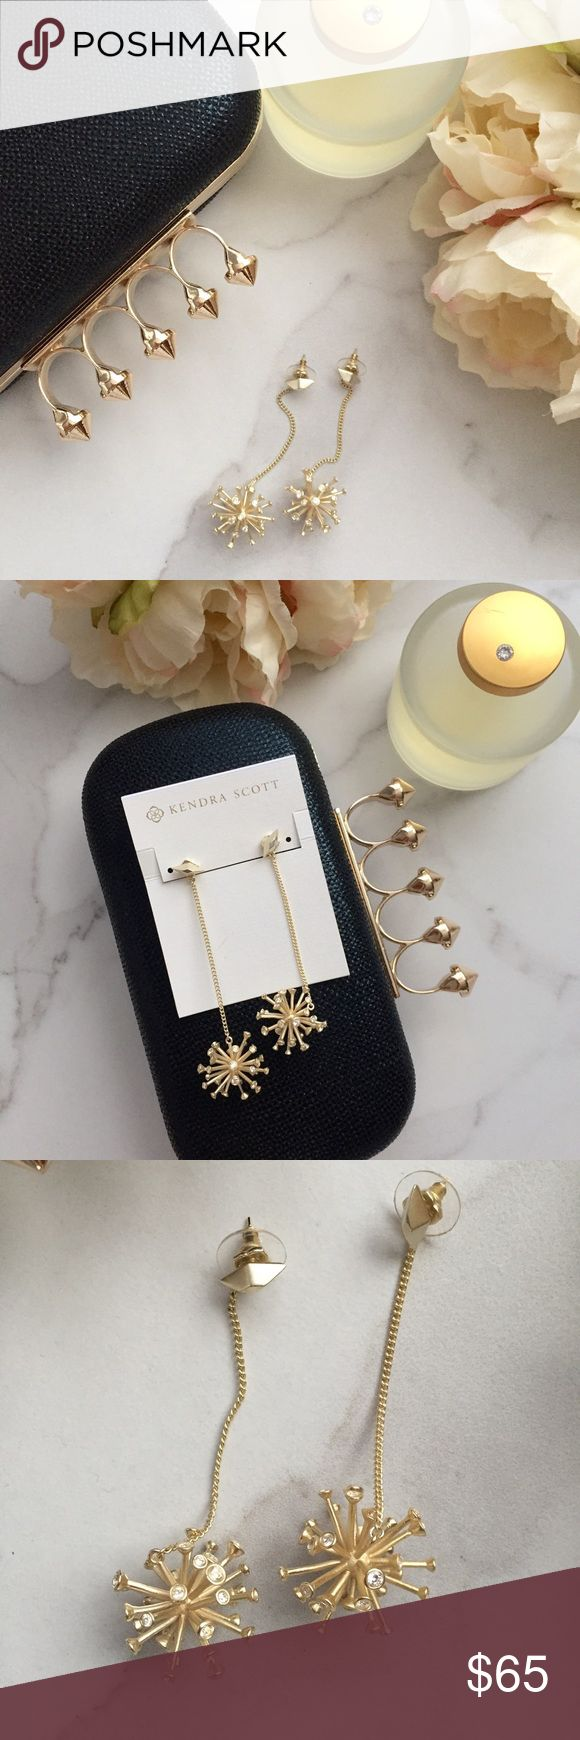 🆕 Kendra Scott Tricia drop earrings Beautiful statement drop earrings by Kendra Scott have a slender gold cable chain with a starburst bauble accented with sparkling crystals. Brand new and never worn. Will come with dust bag. Last picture for modeling purposes only (GOLD earrings is item for sale). Kendra Scott Jewelry Earrings